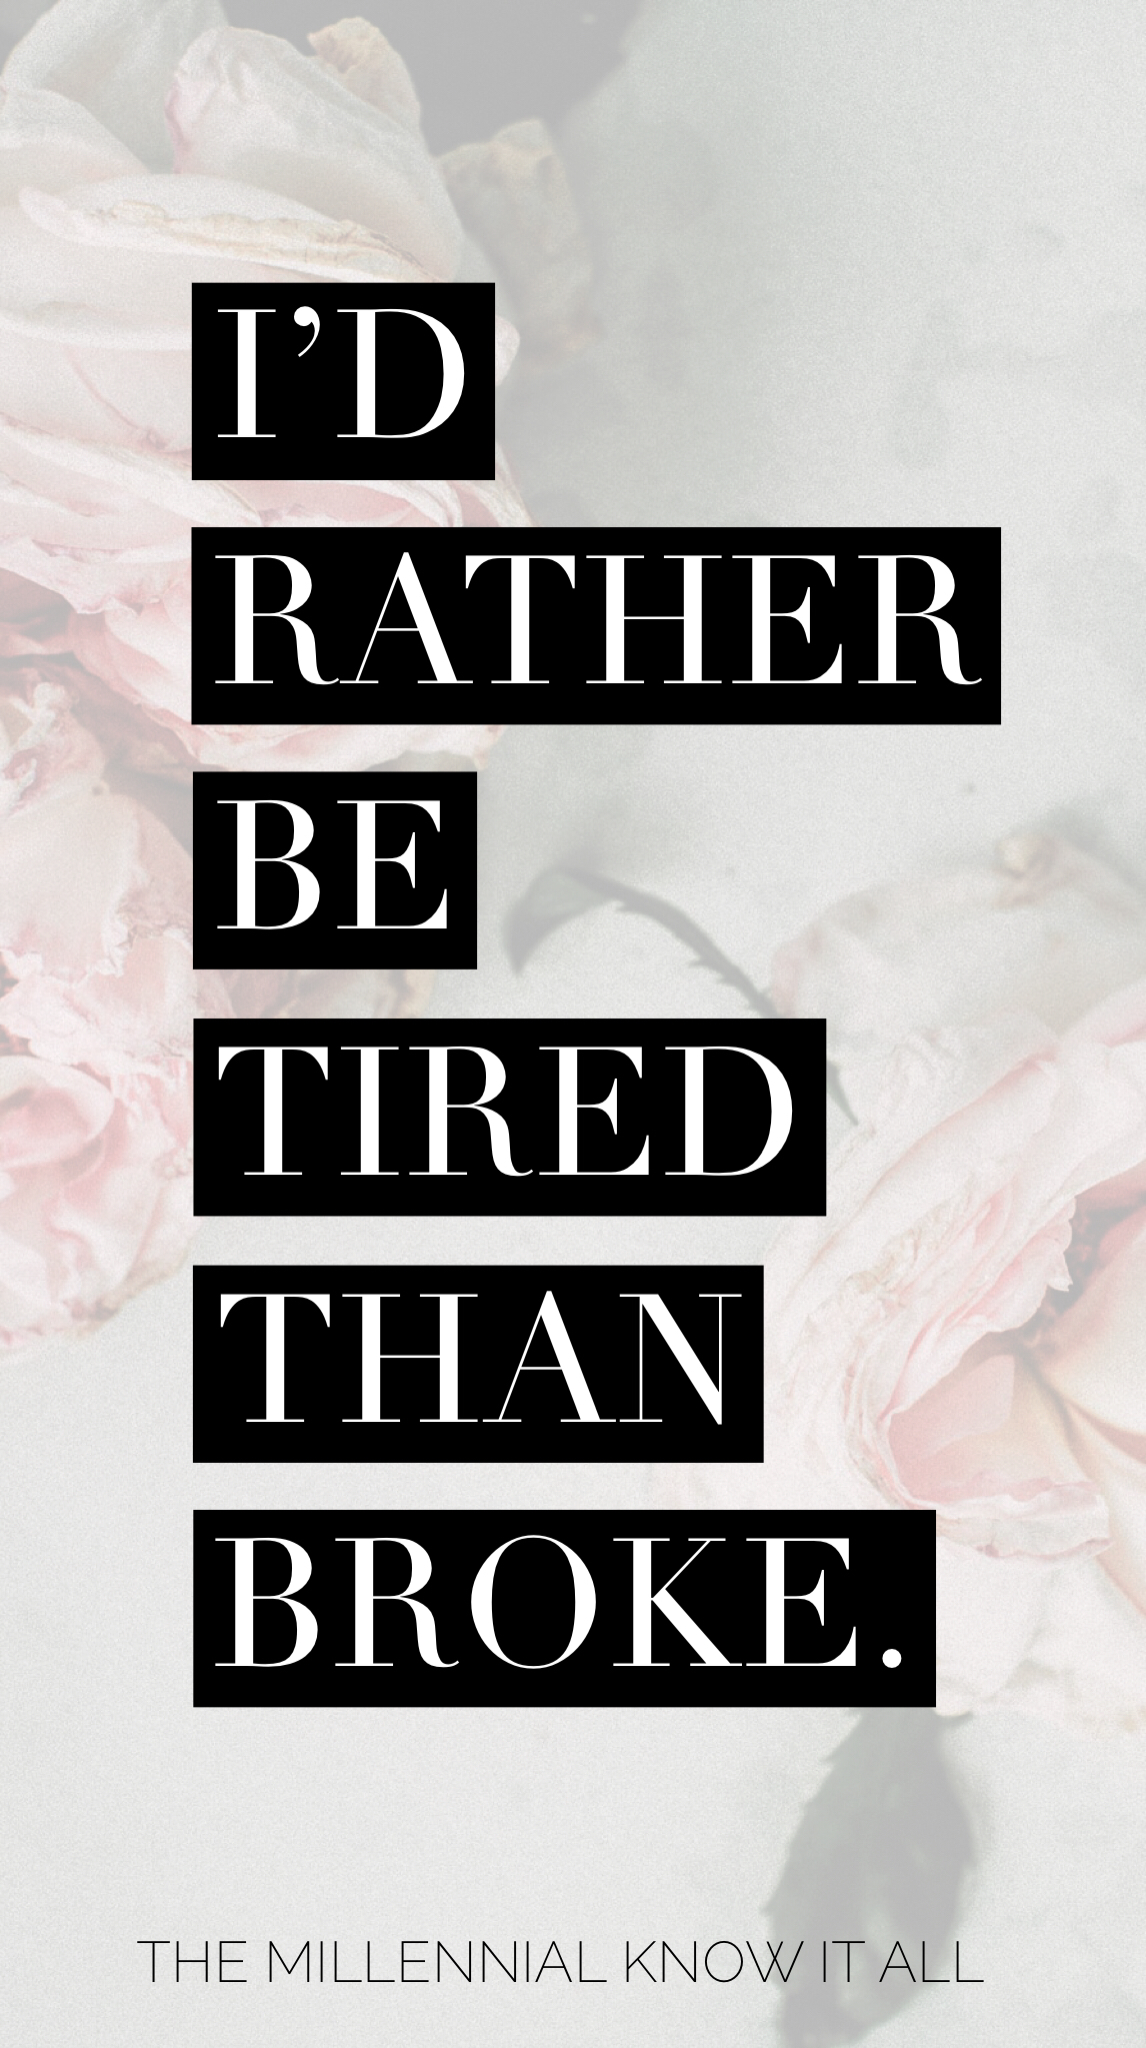 Id Rather Be Tired Than Broke Girlbossquotes Q U O T E S Boss